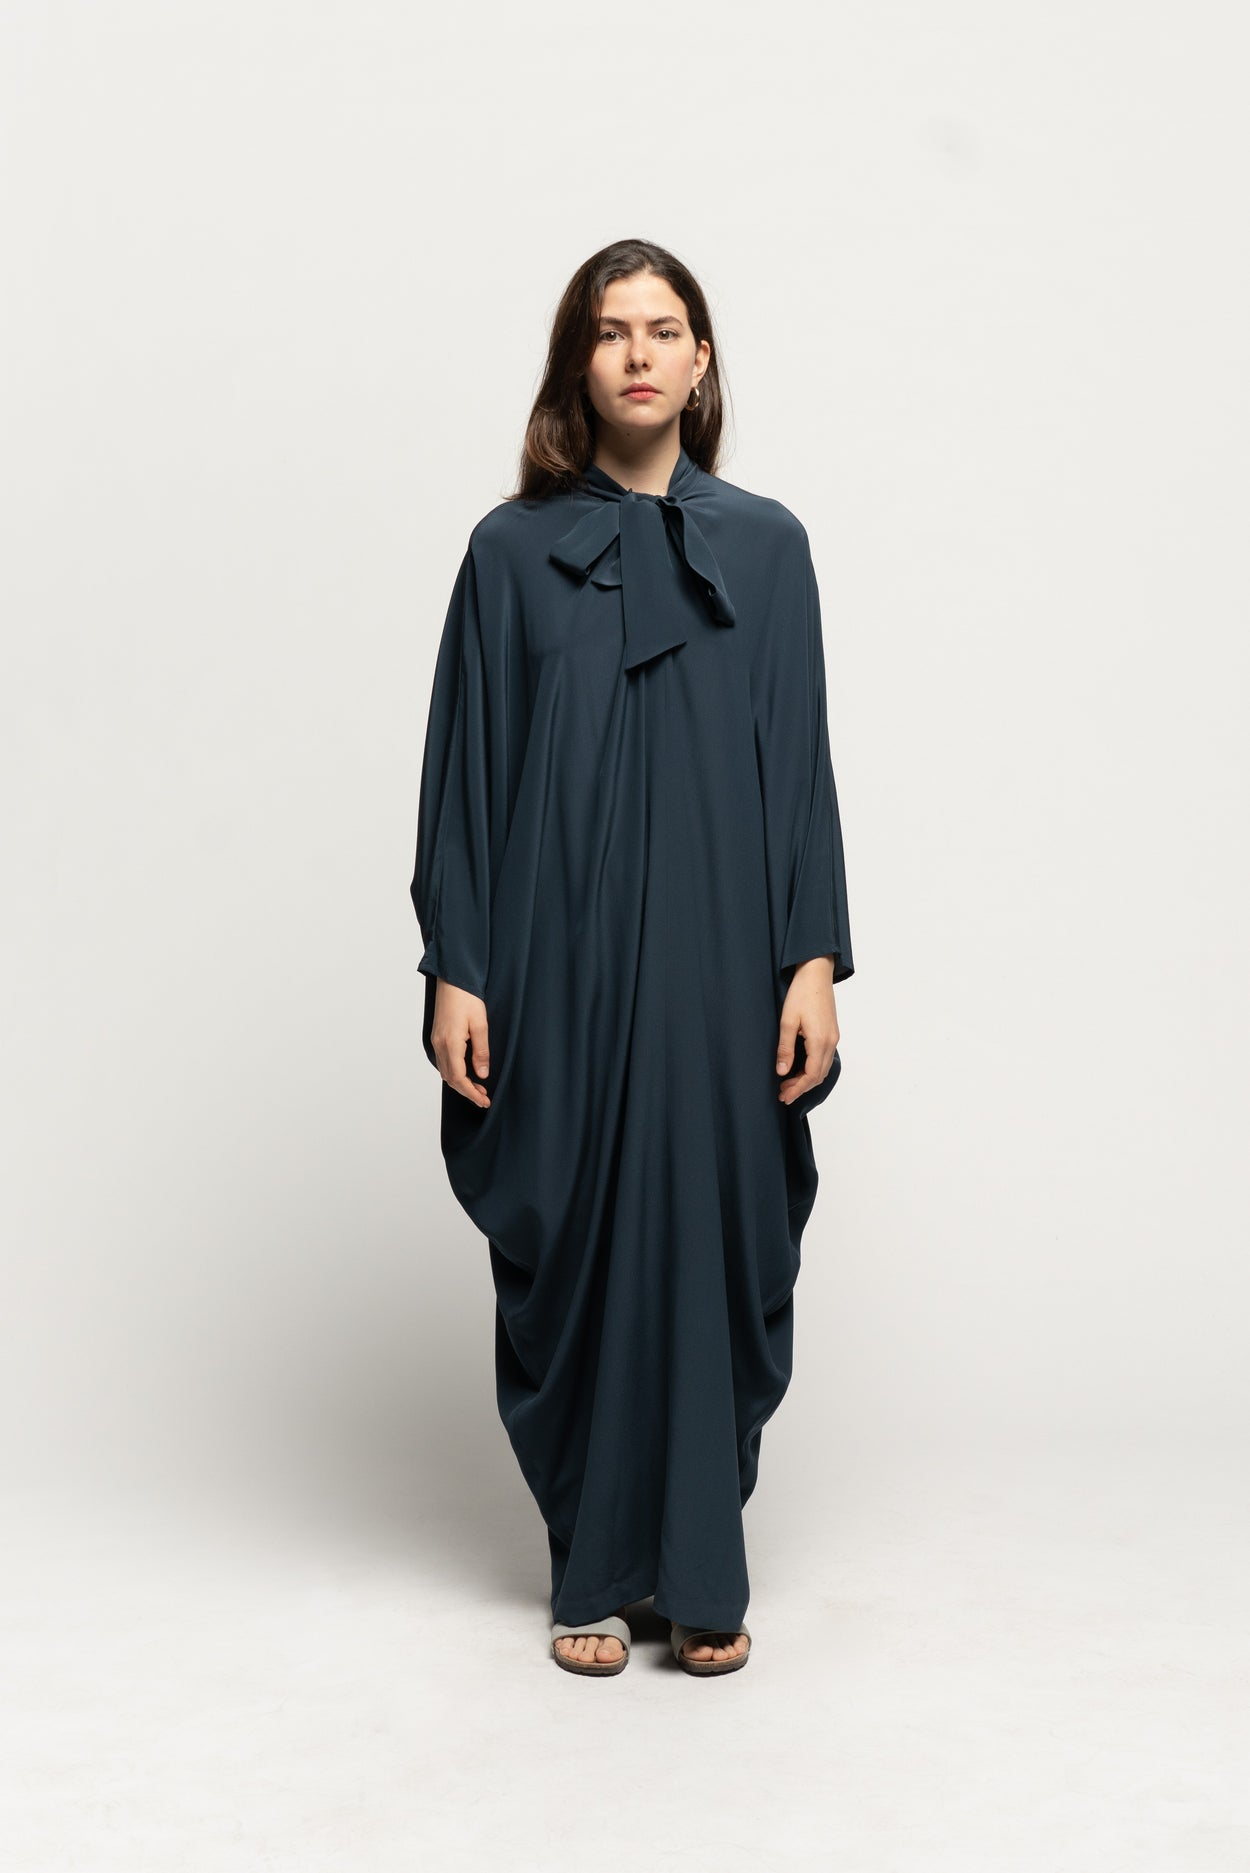 The Long Kite Caftan